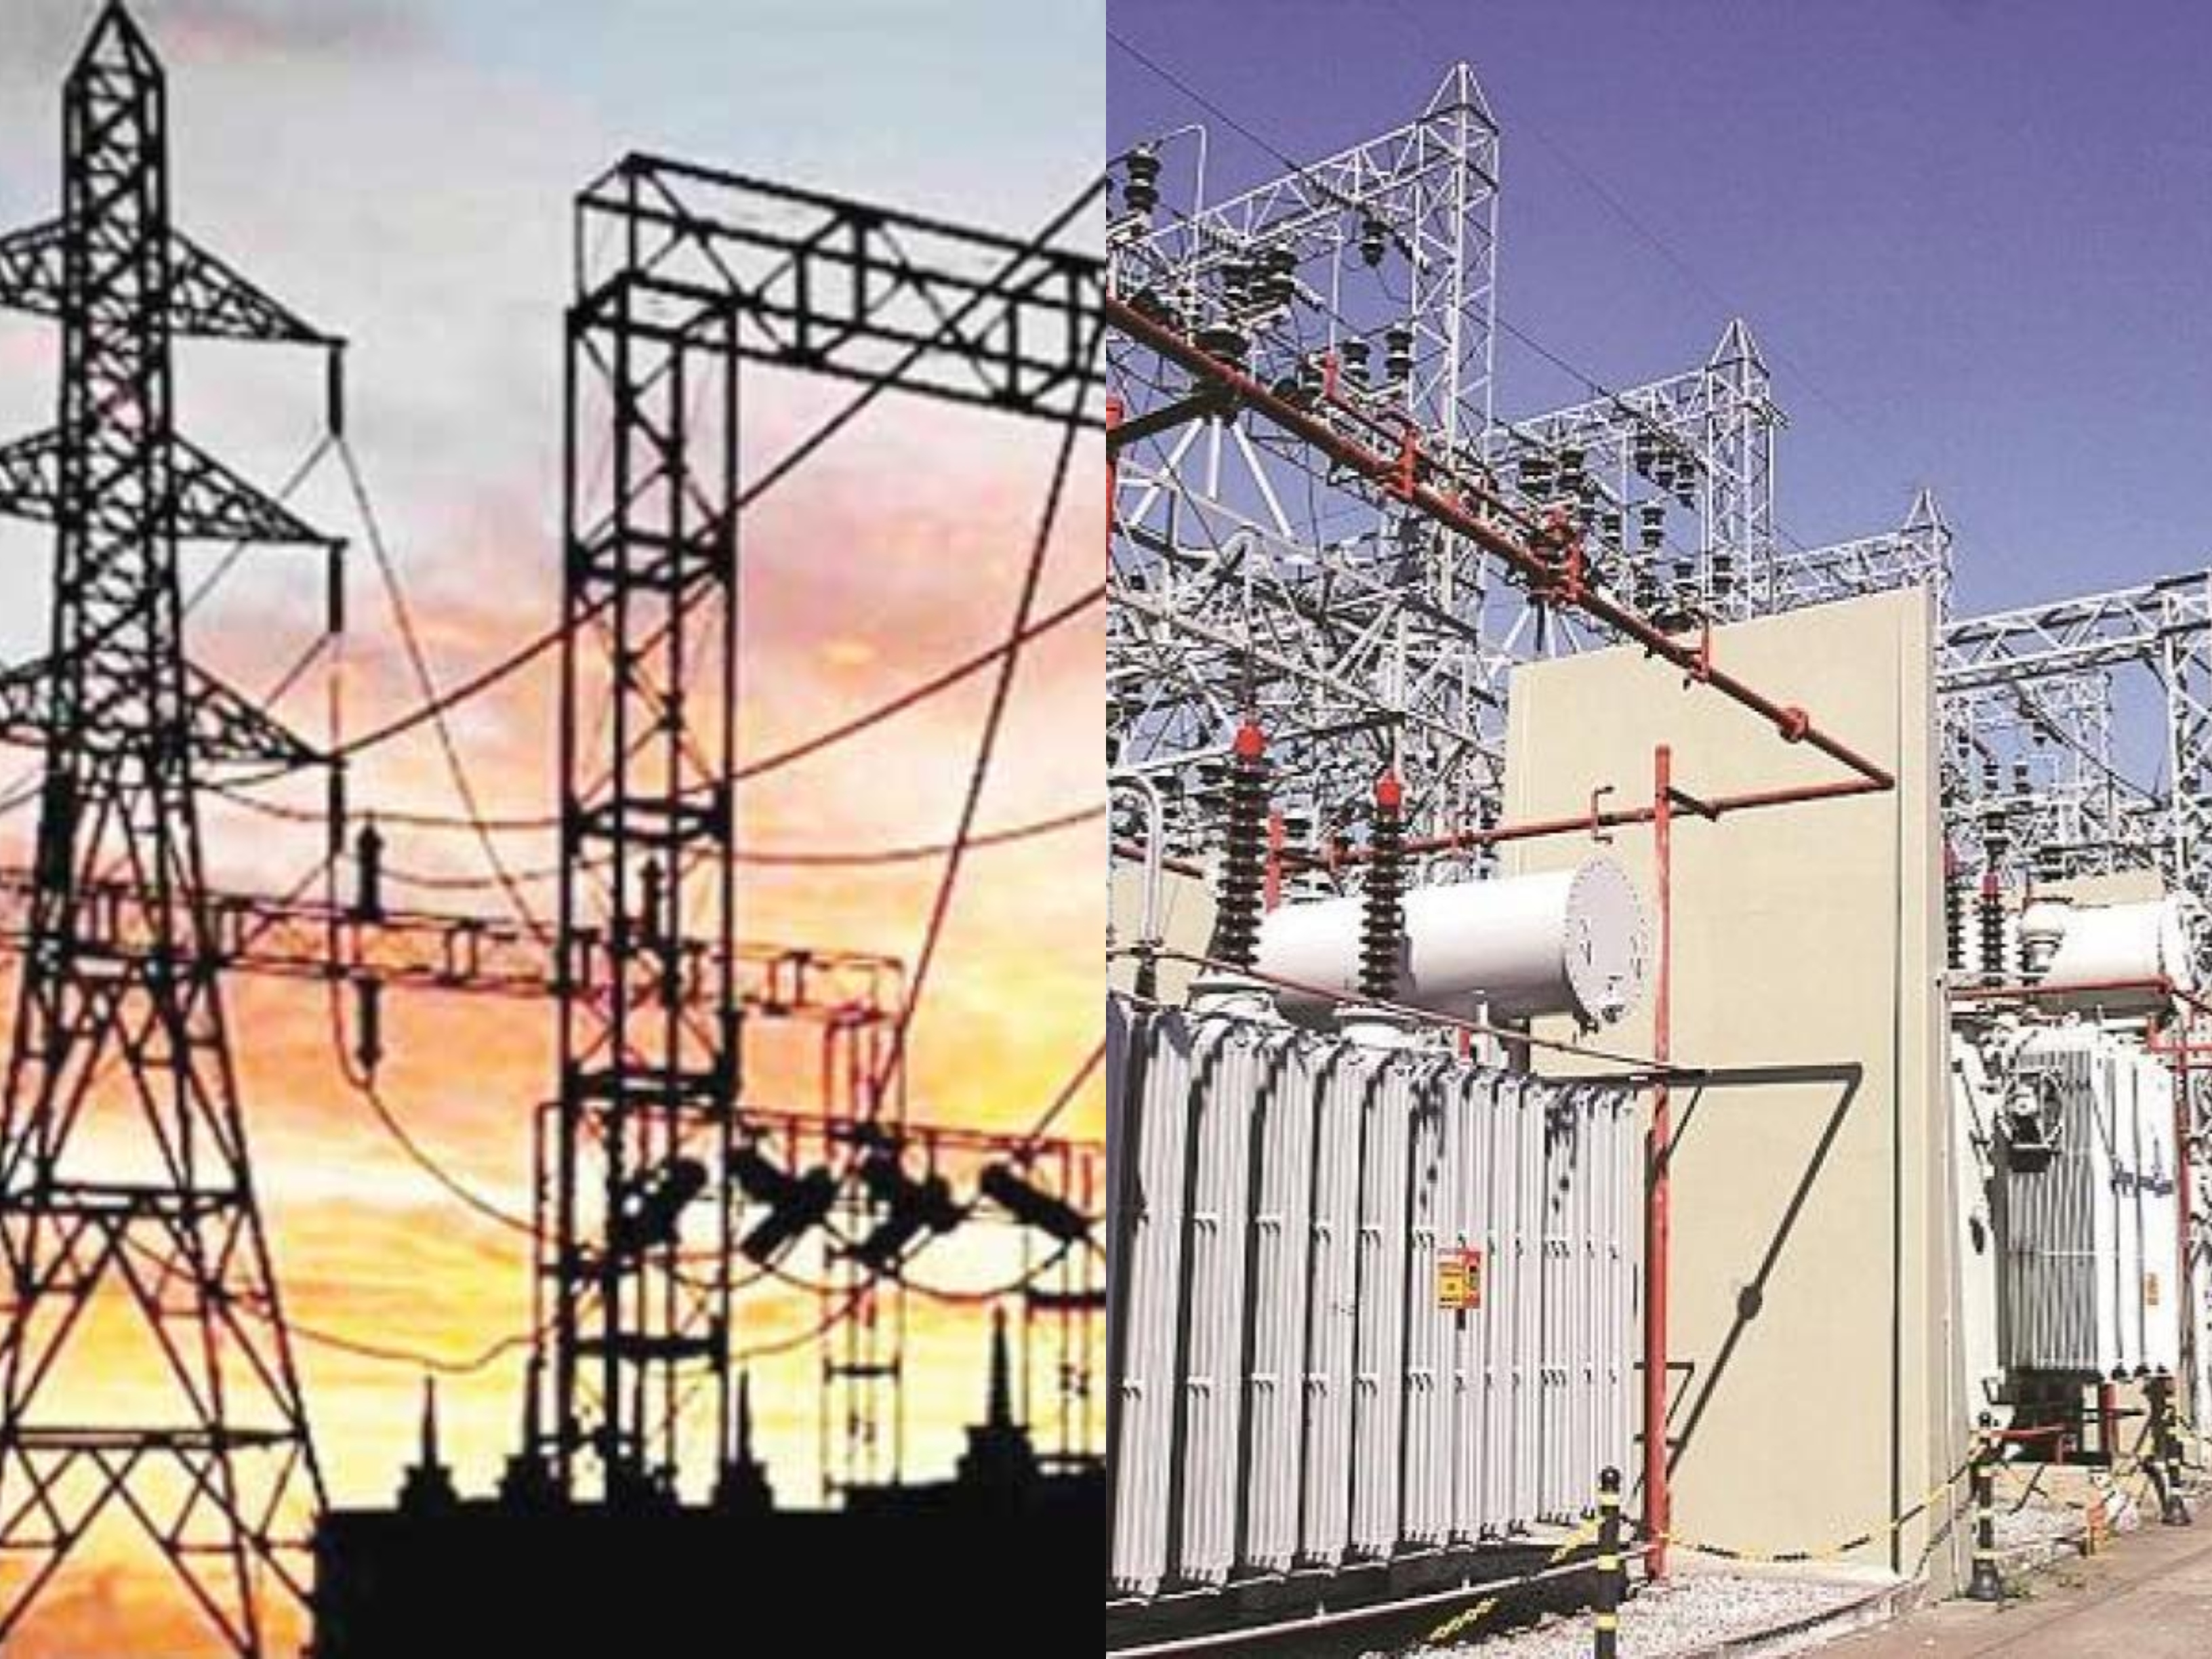 Making Discoms Accountable: Competition, Not Rules Will Do The Trick